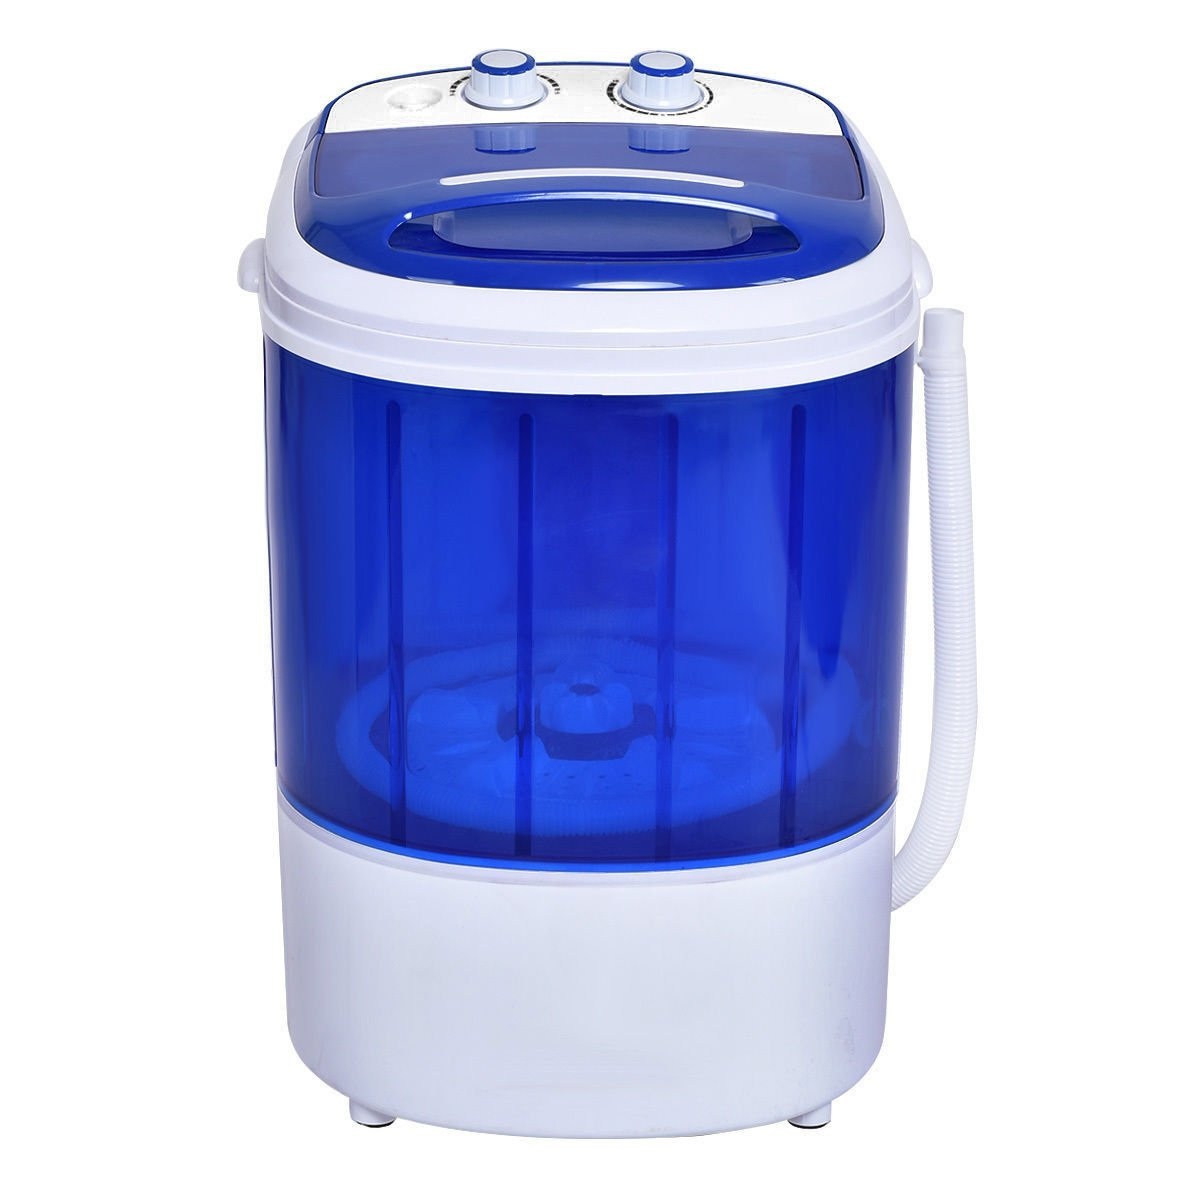 Item Valley Small Mini Portable Compact Washer Washing Machine 6.6lbs Capacity